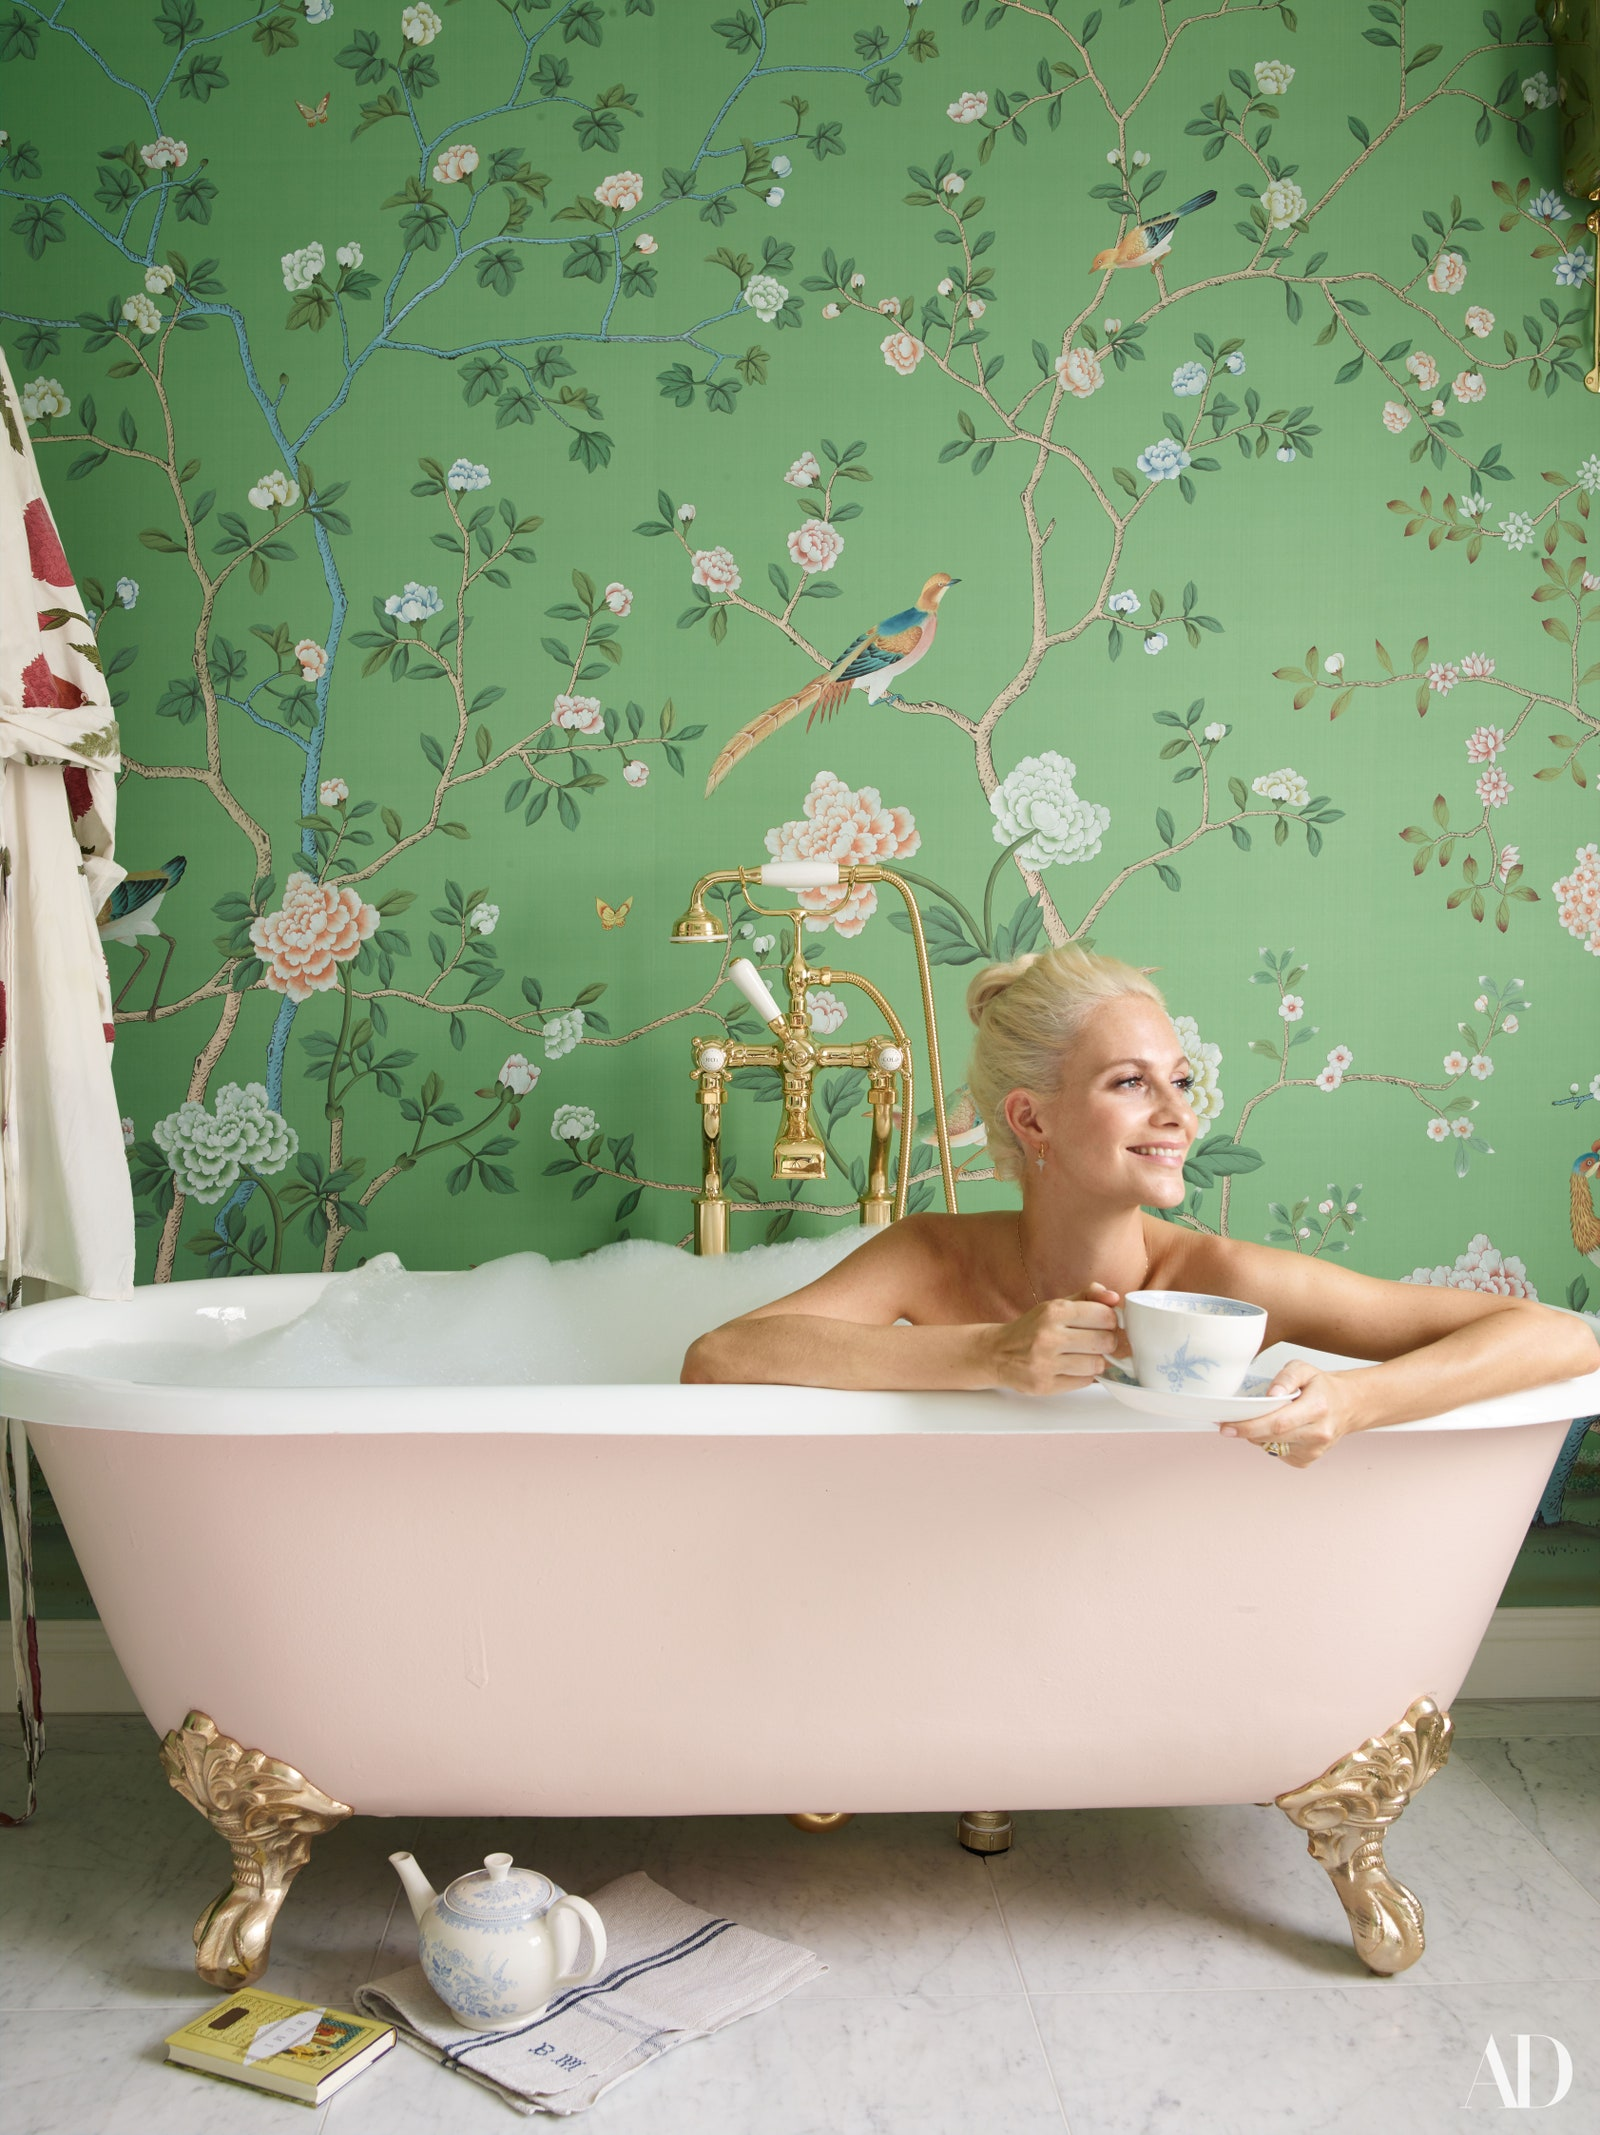 Décor Inspiration | At Home With: Model & Actress Poppy Delevingne, London